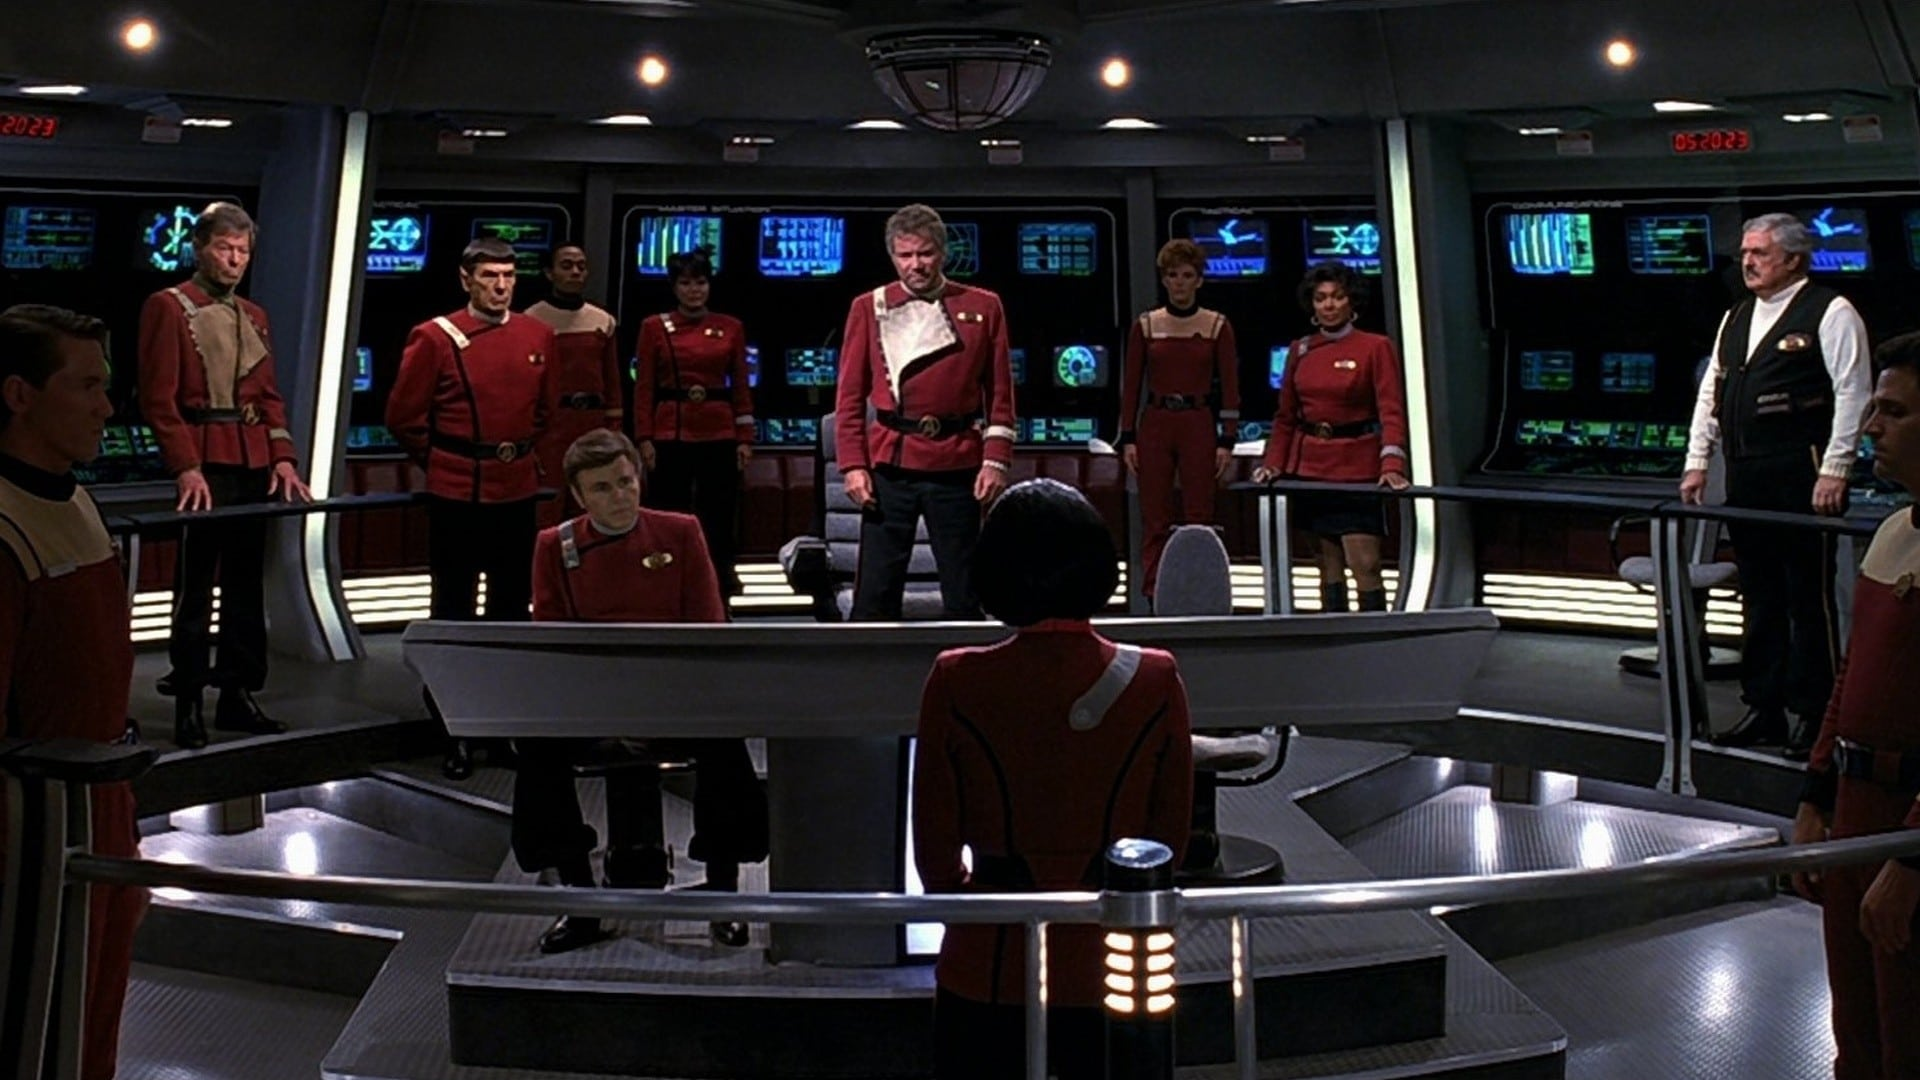 Star Trek VI: The Undiscovered Country backdrop